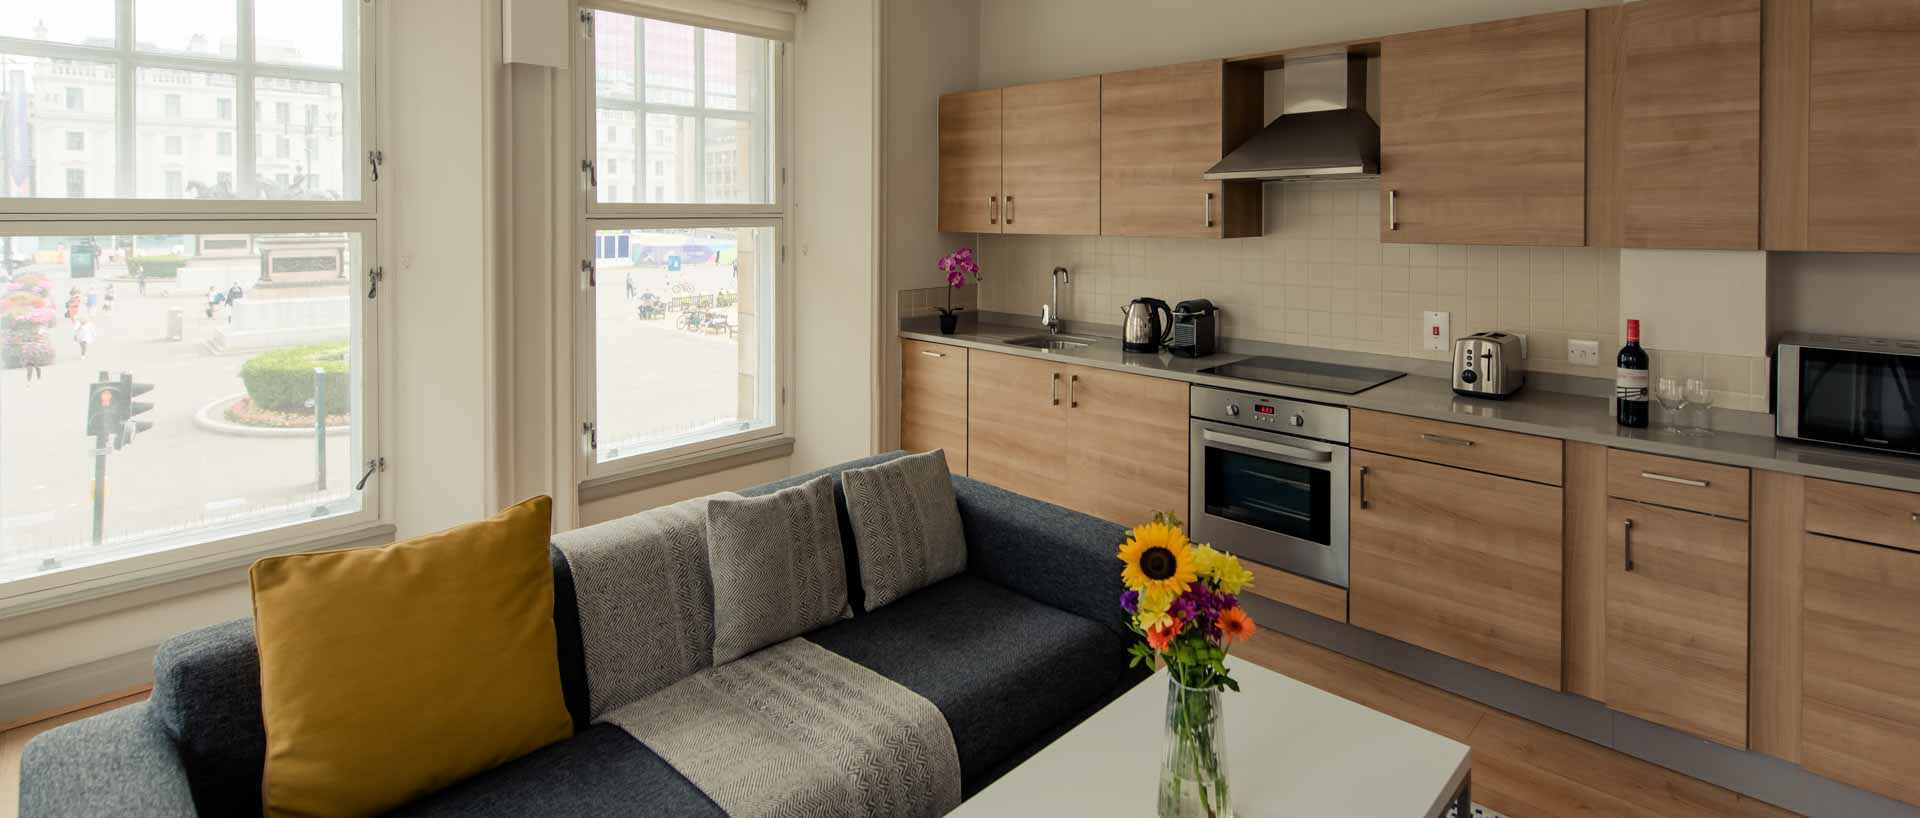 Kitchen and living space PREMIER SUITES PLUS Glasgow George Square